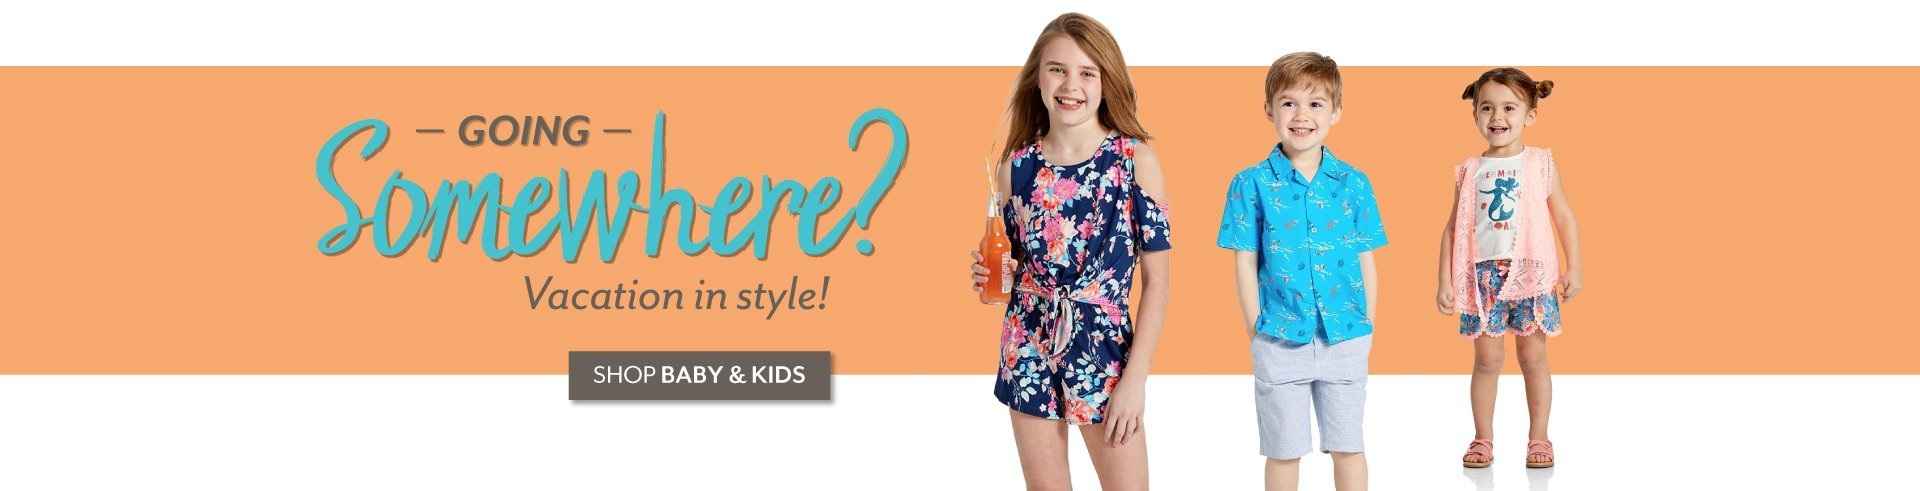 Going Somewhere? - Shop Baby and Kids at Burkes Outlet